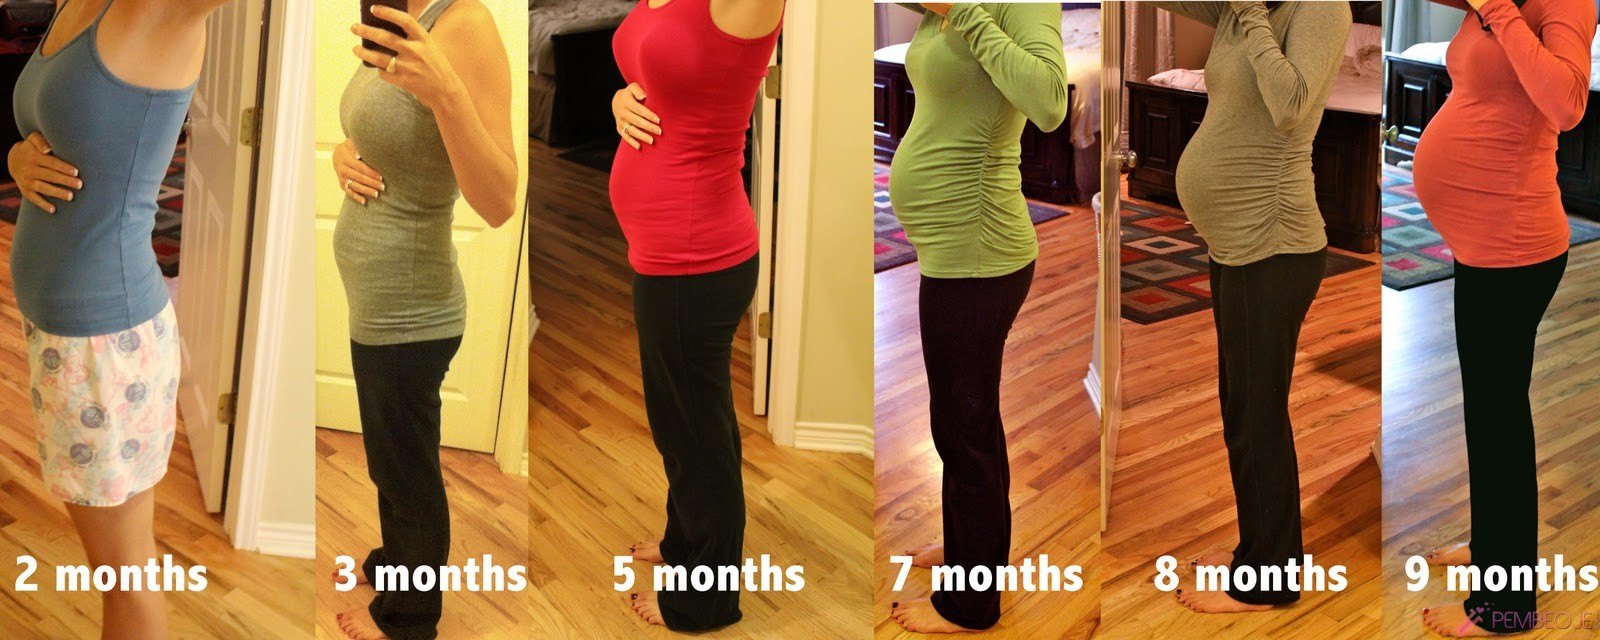 Growing belly